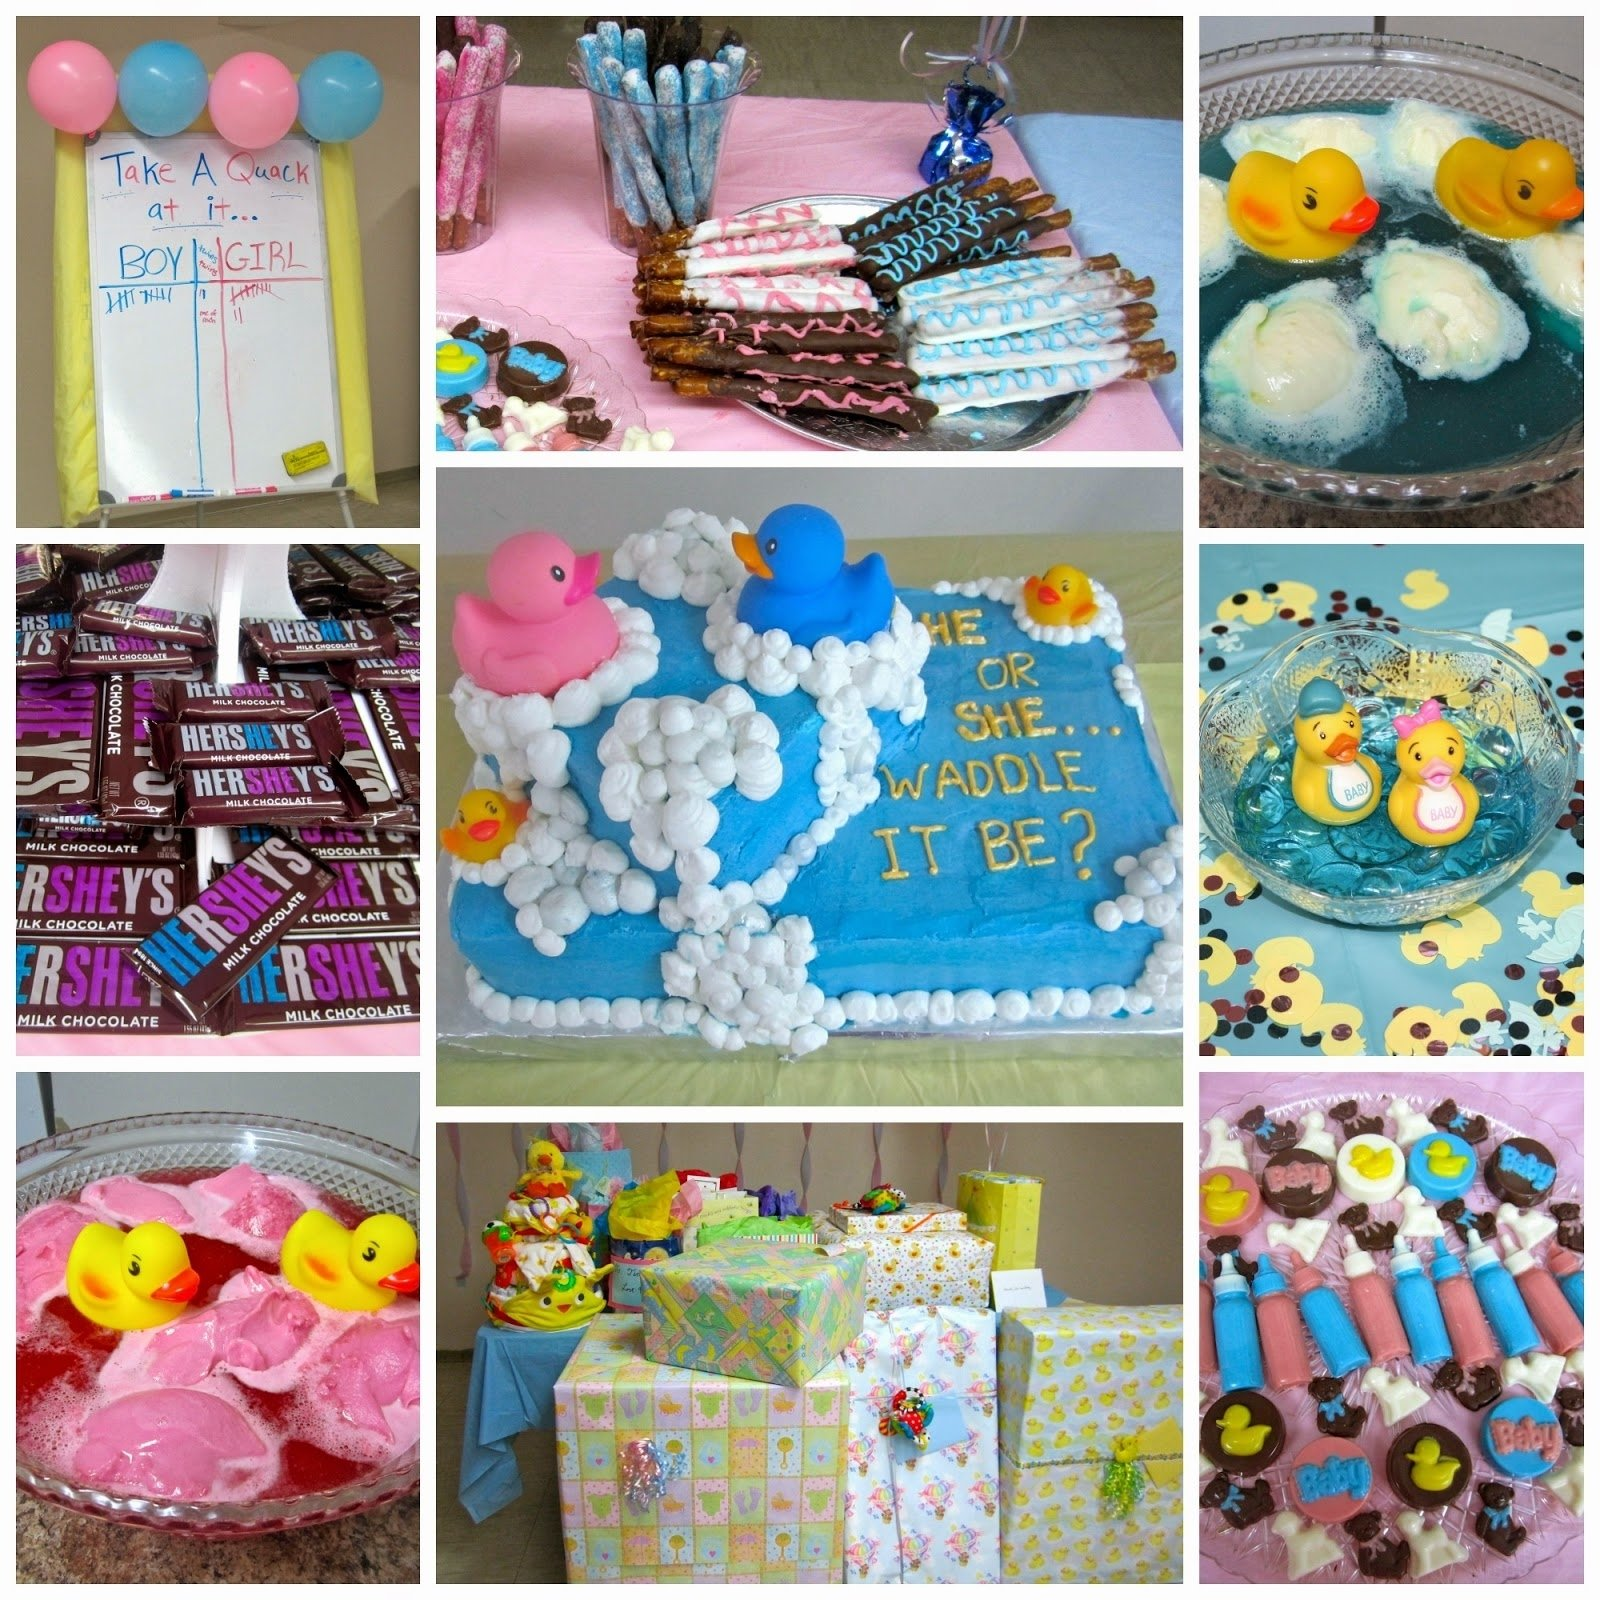 10 Unique Gender Reveal Party Gift Ideas ideas unbelievableaby shower gender reveal pinterest gift idea food 2021